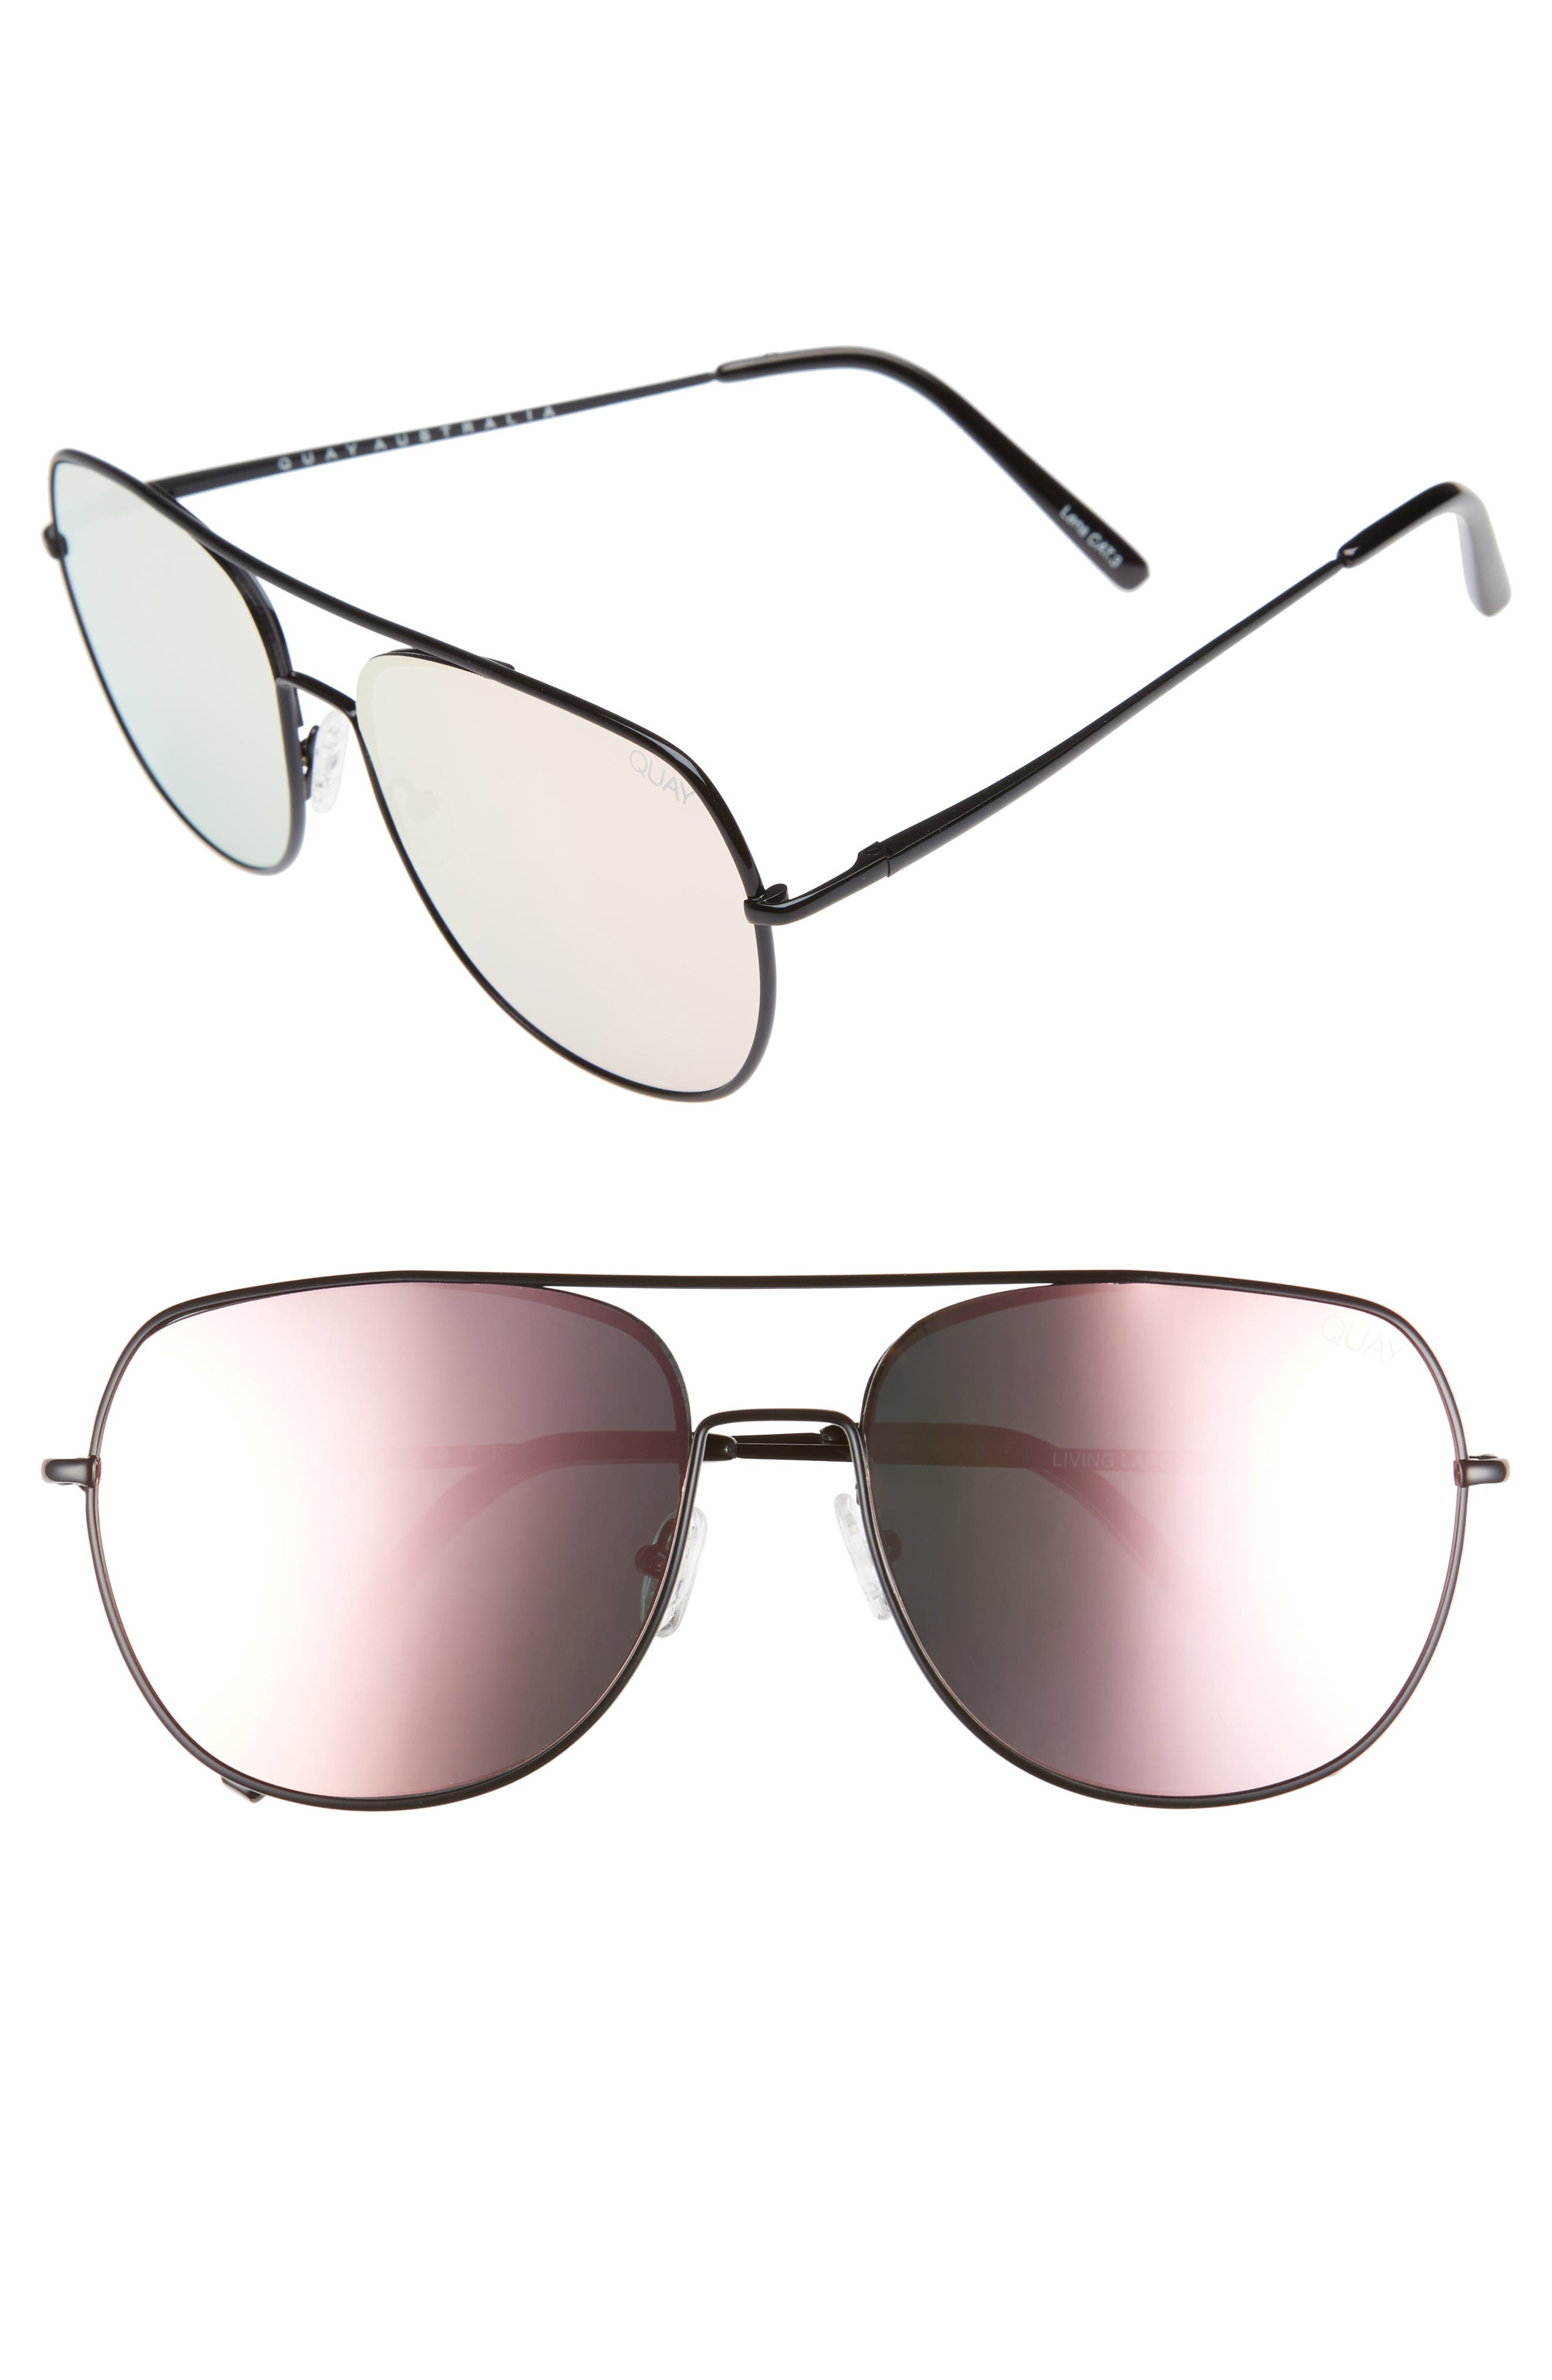 Living Large 60mm Mirrored Aviator Sunglasses,                         Main,                         color, 001